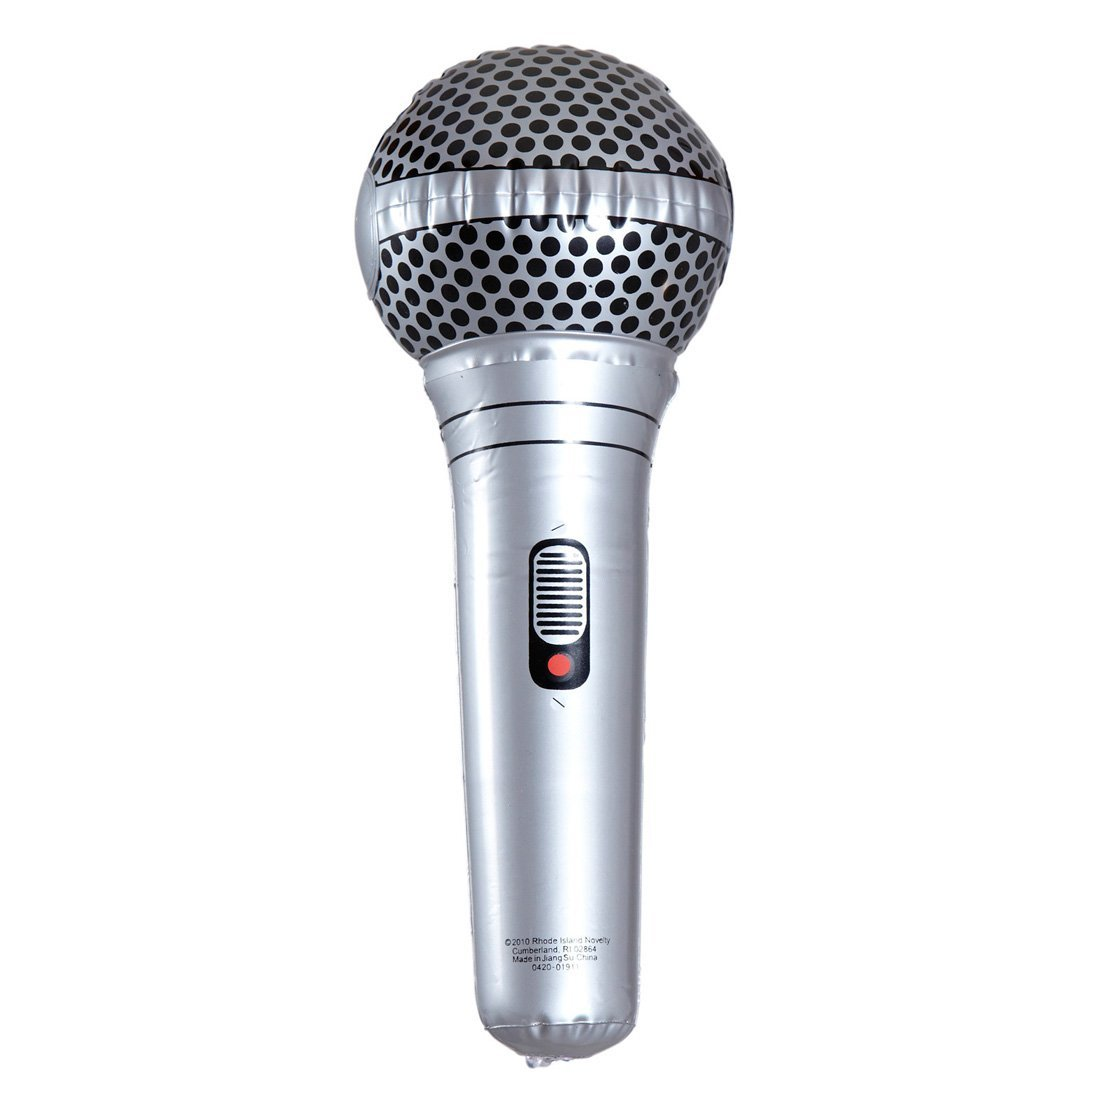 NET TOYS Microphone gonflable microphone air micro caoutchouc mic PVC karaoke gonflable attrapes micro rock star